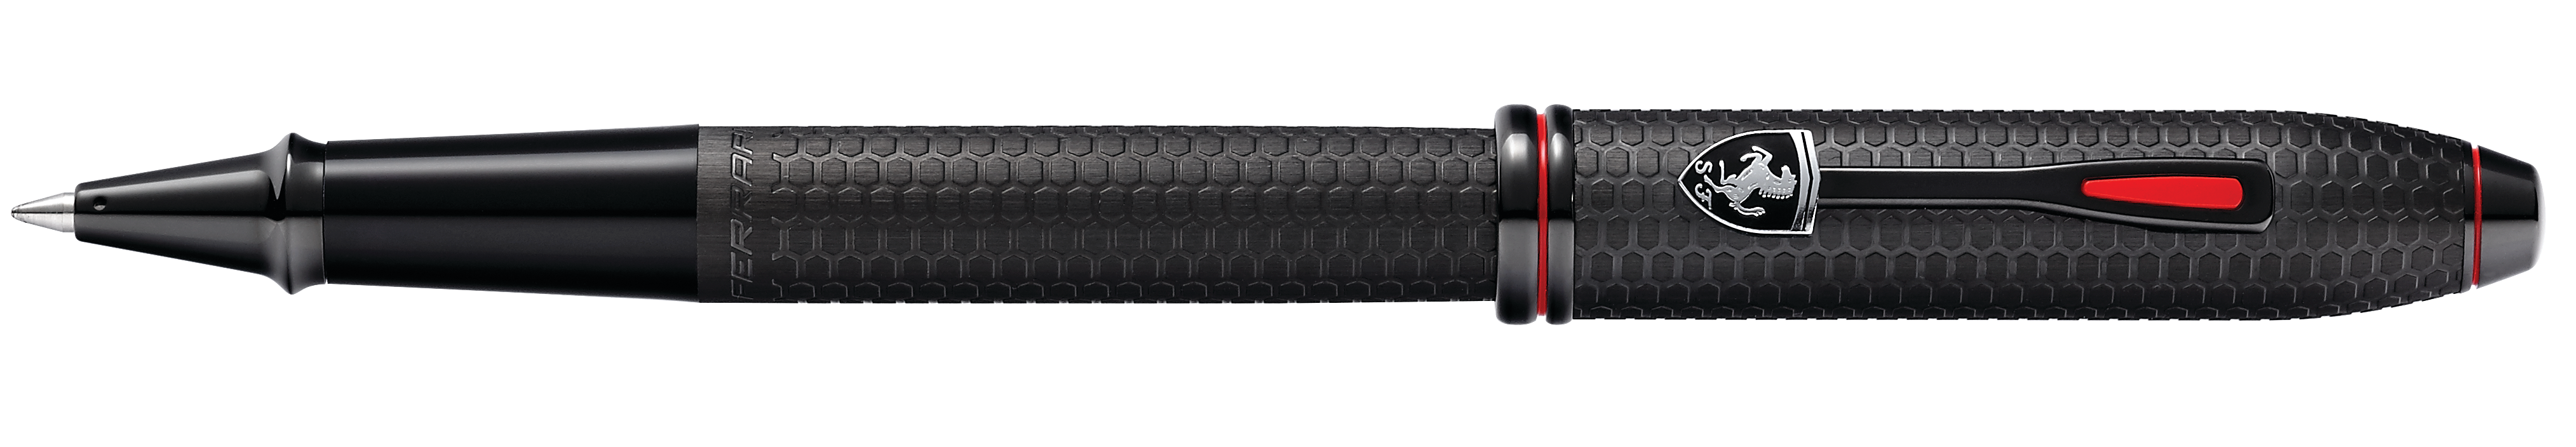 Cross Townsend Collection for Scuderia Ferrari Brushed Black Chemically Etched Honeycomb Pattern Rollerball Pen